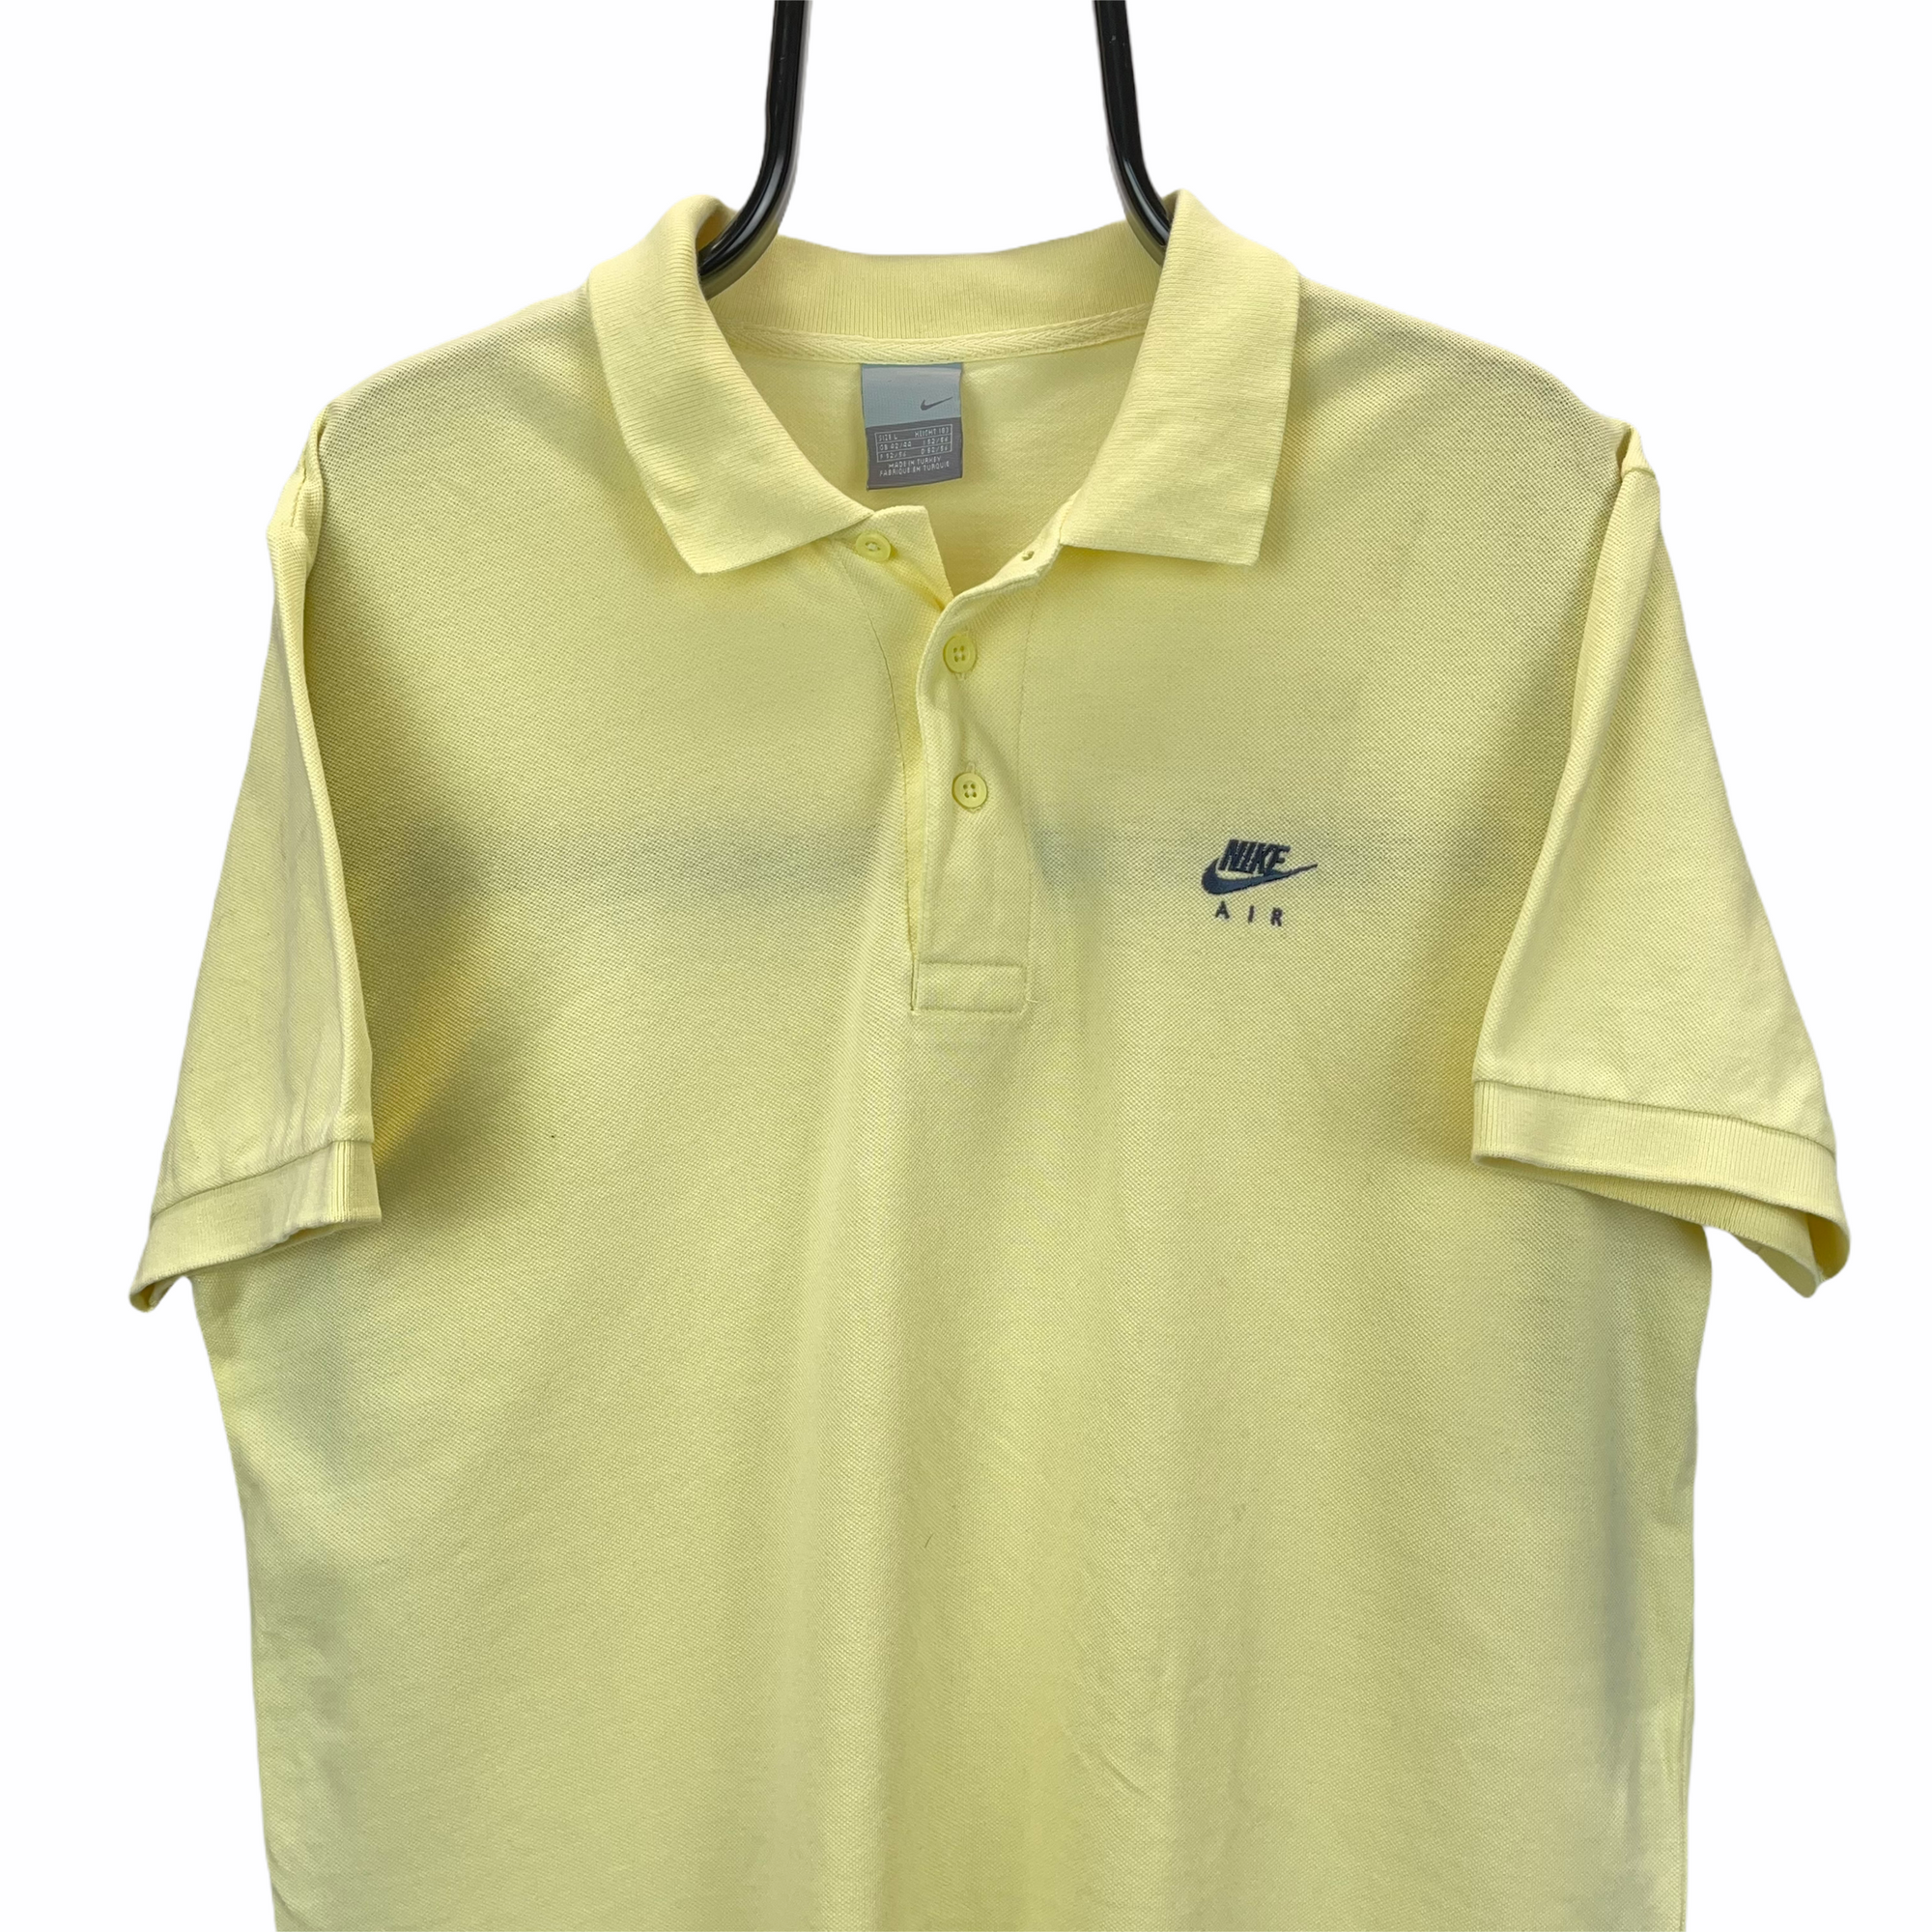 VINTAGE NIKE EMBROIDERED SMALL LOGO POLO SHIRT IN LEMON YELLOW - MEN'S LARGE/WOMEN'S XL